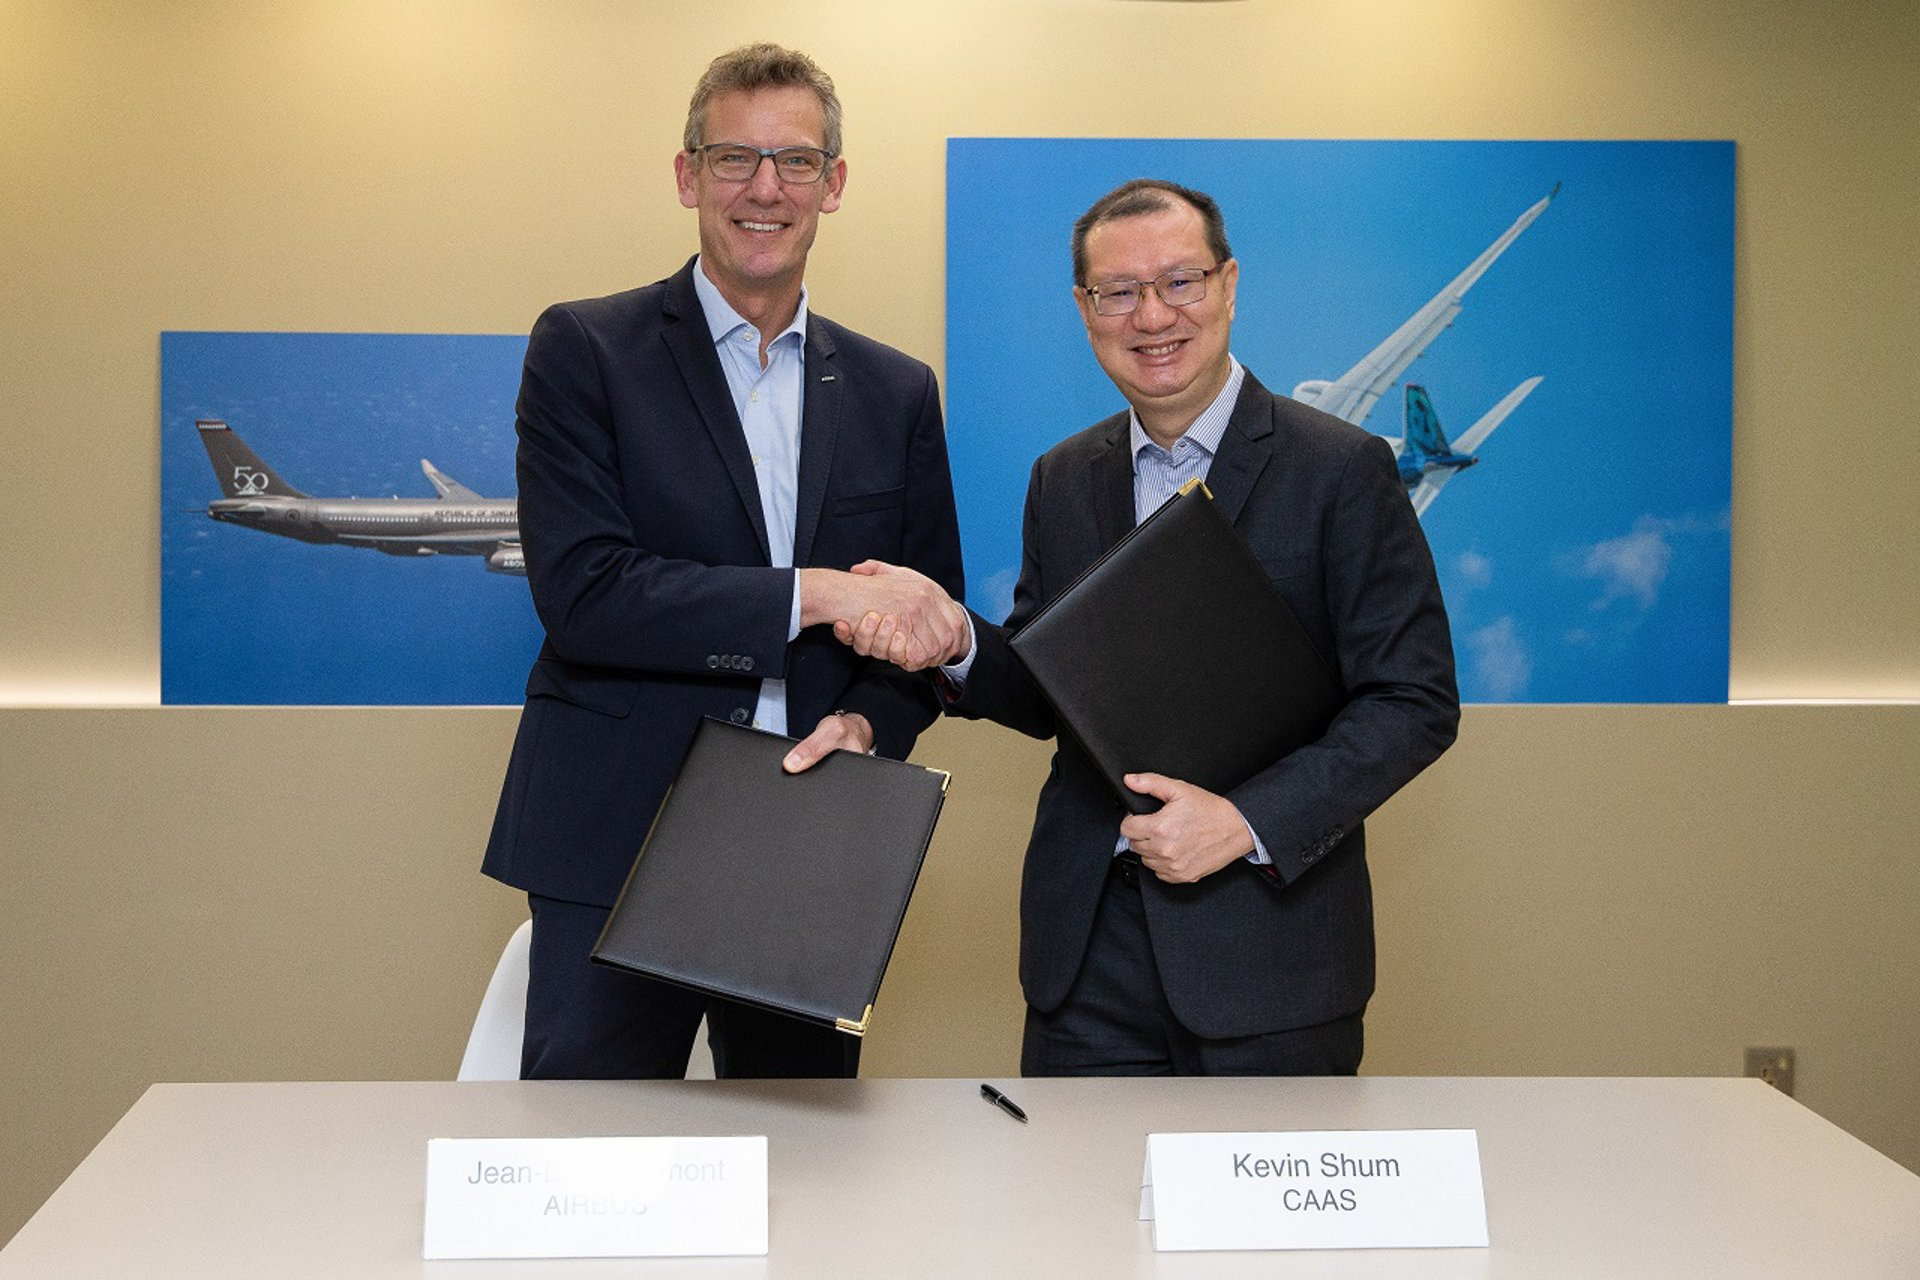 Airbus and the Civil Aviation Authority of Singapore (CAAS) have signed a Memorandum of Understanding (MOU) to enable urban air mobility (UAM) in Singapore.